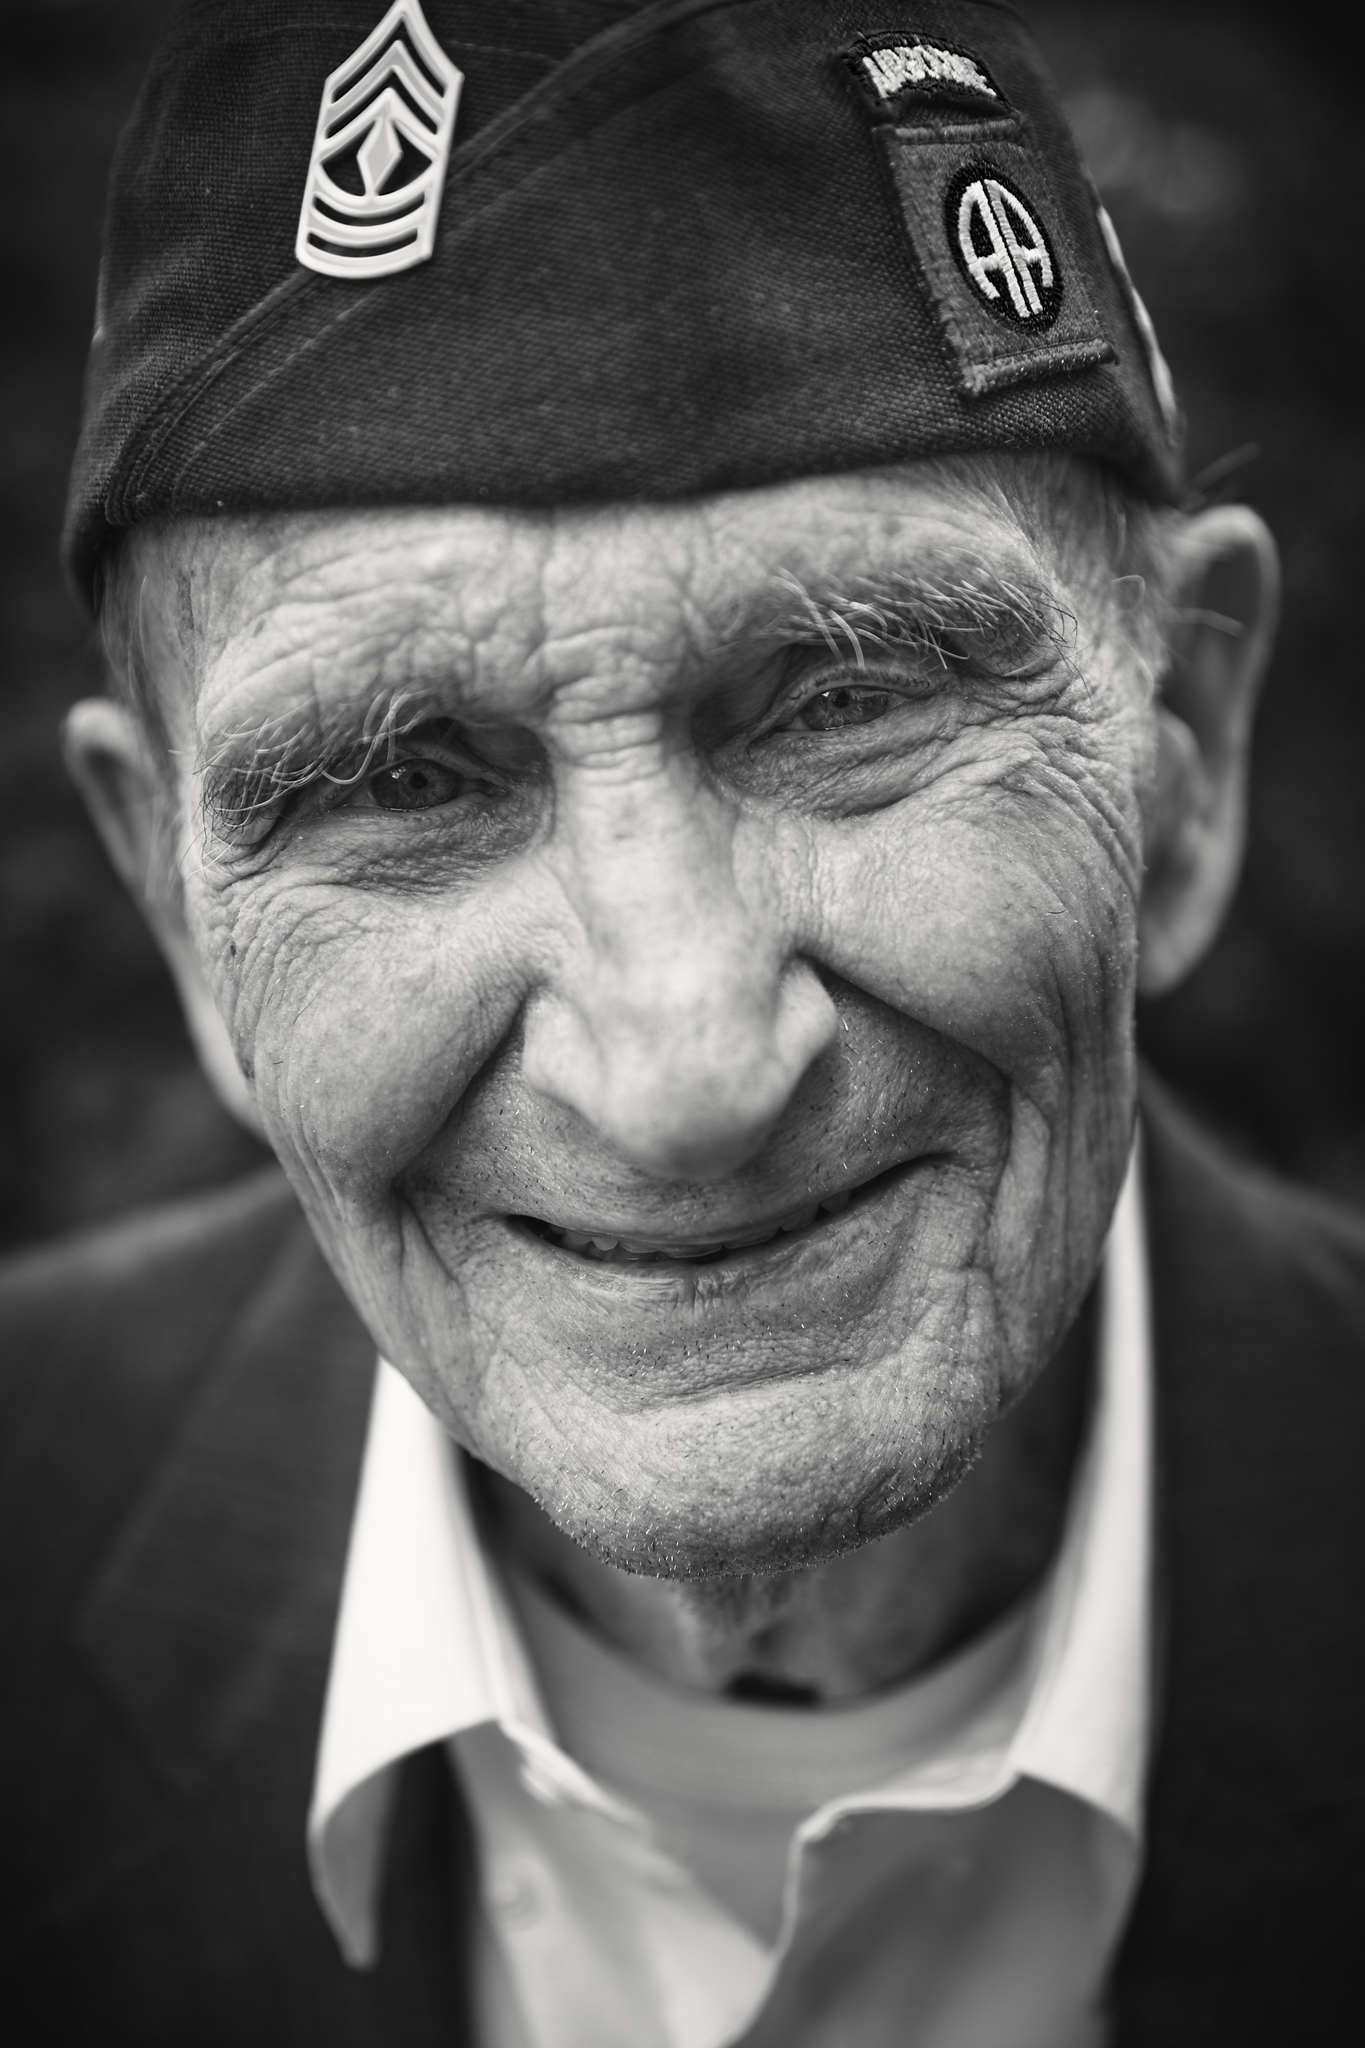 D-DAY VETERANS, FRANCE - JUNE 6: Clifford Stump (95 yrs old), from Texas, a former member of the 82